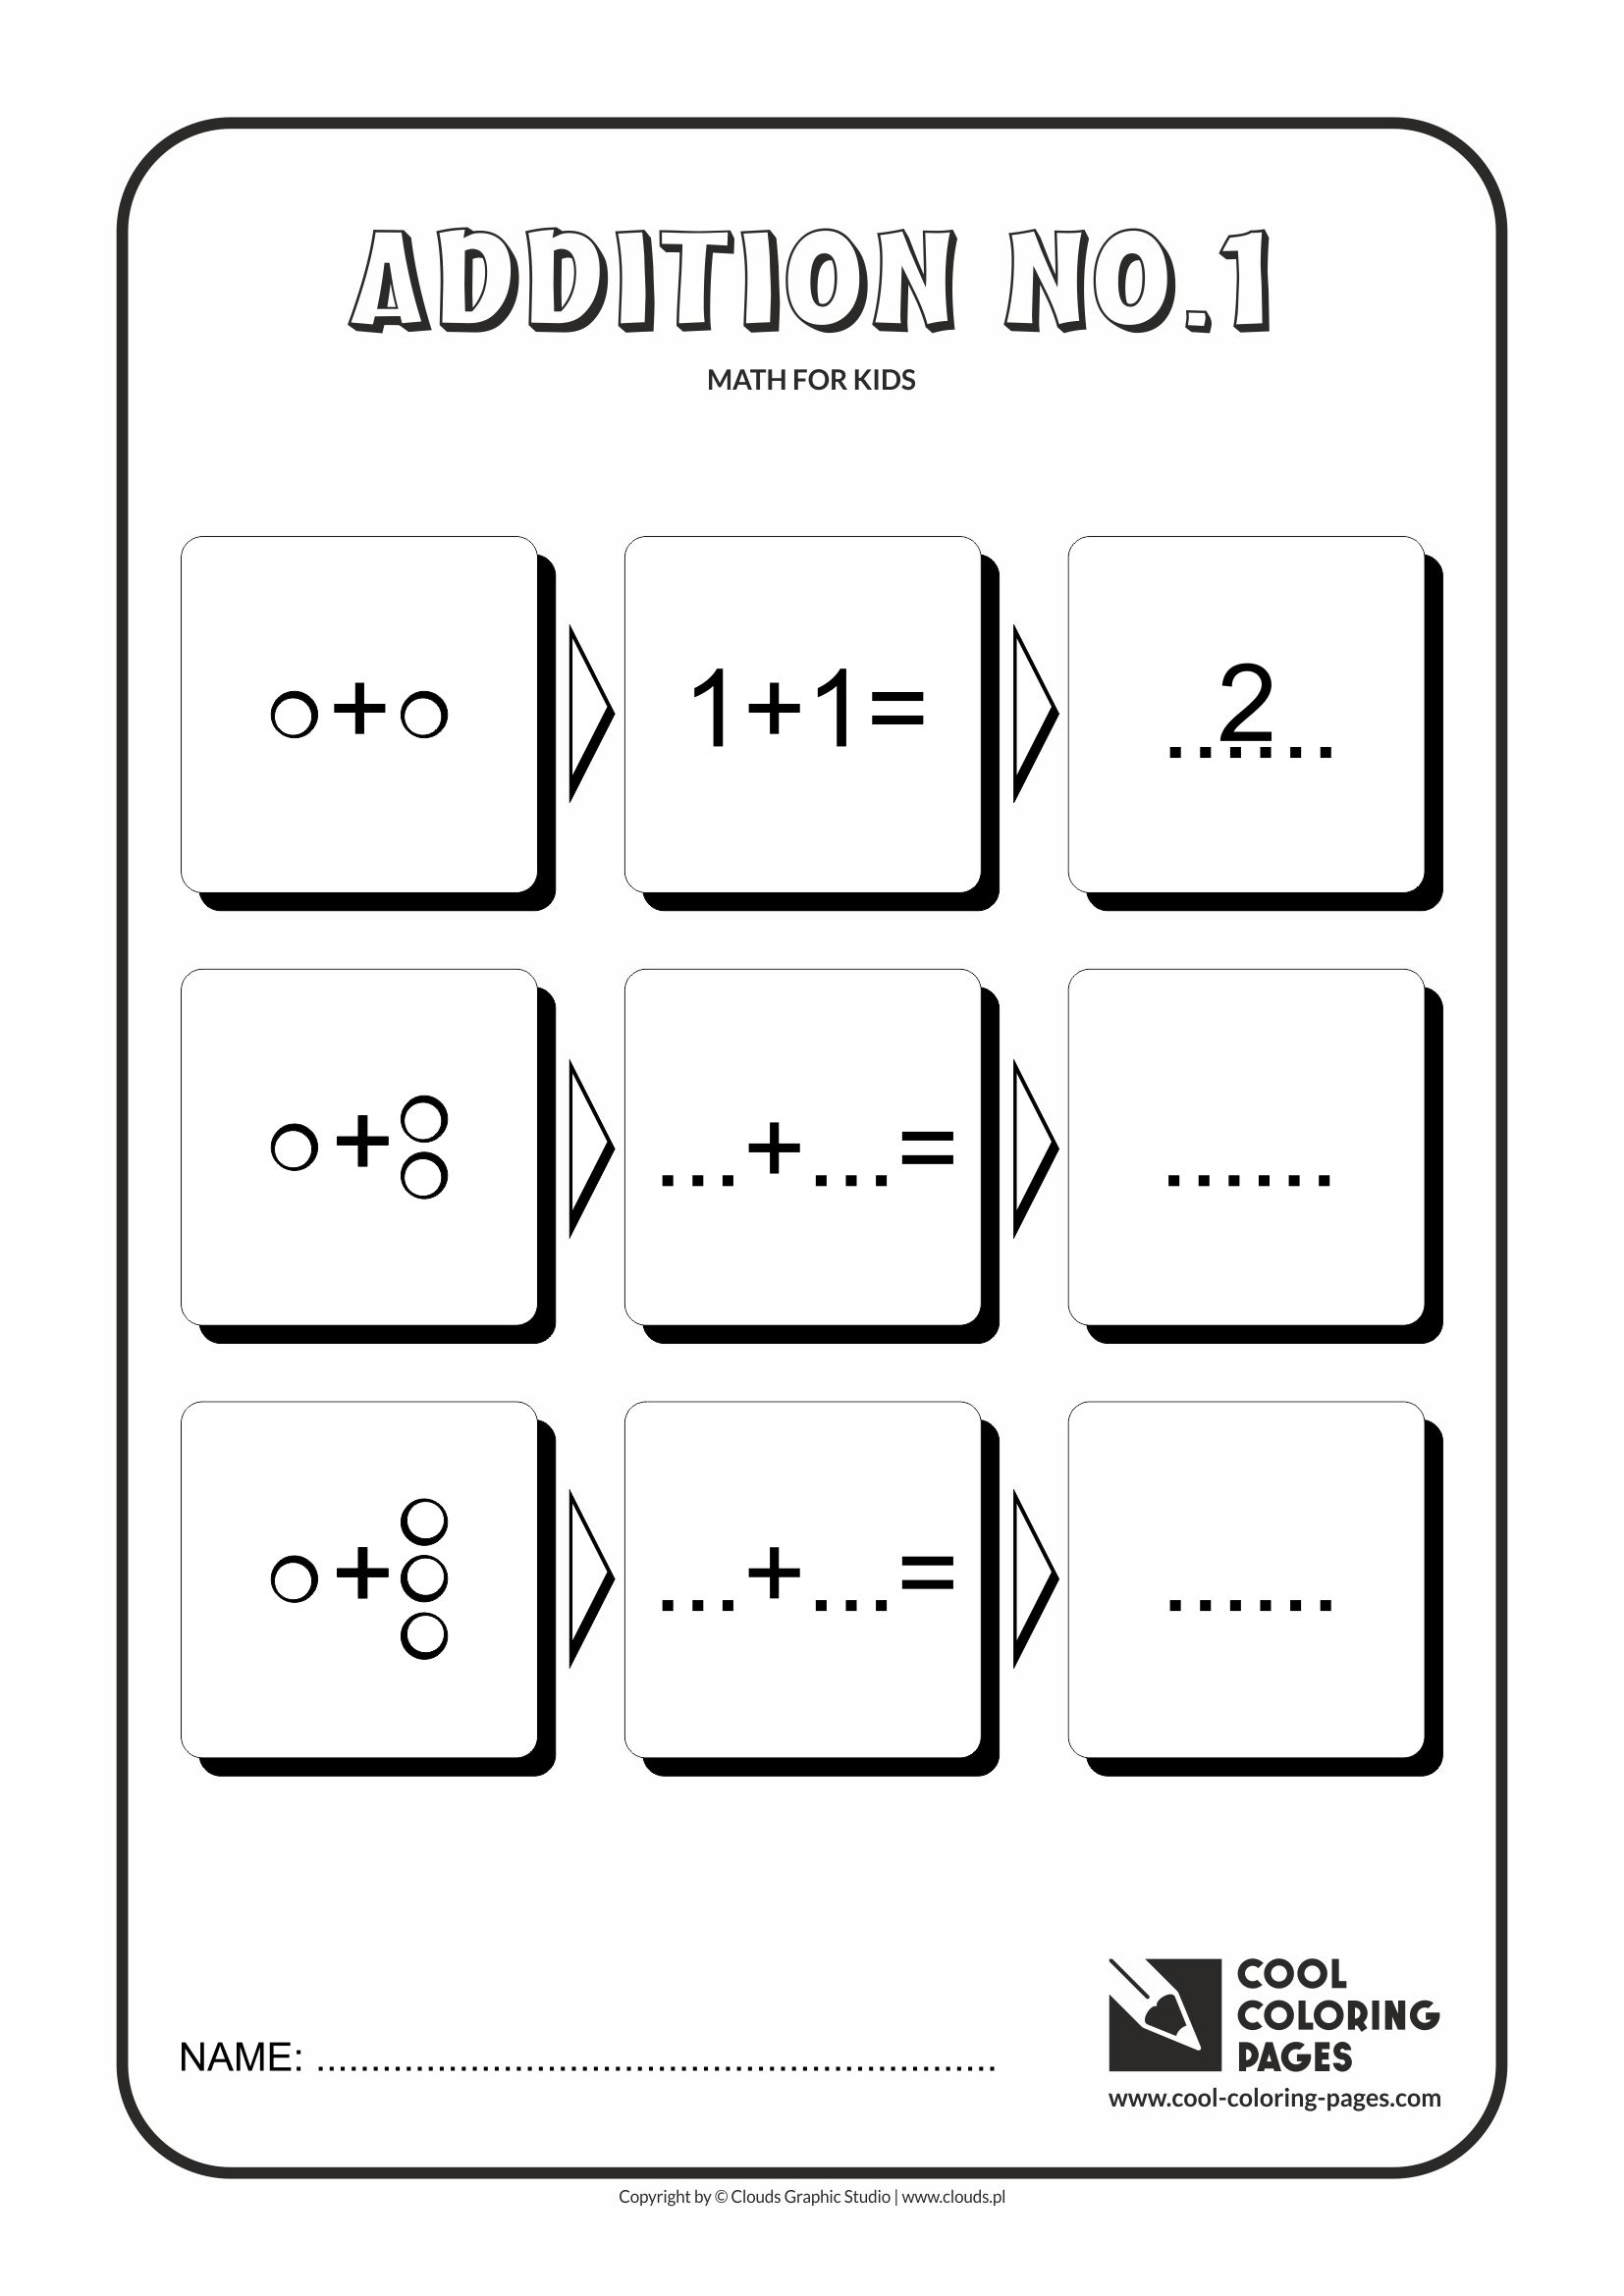 Cool Coloring Pages - Math for kids / Addition no.1